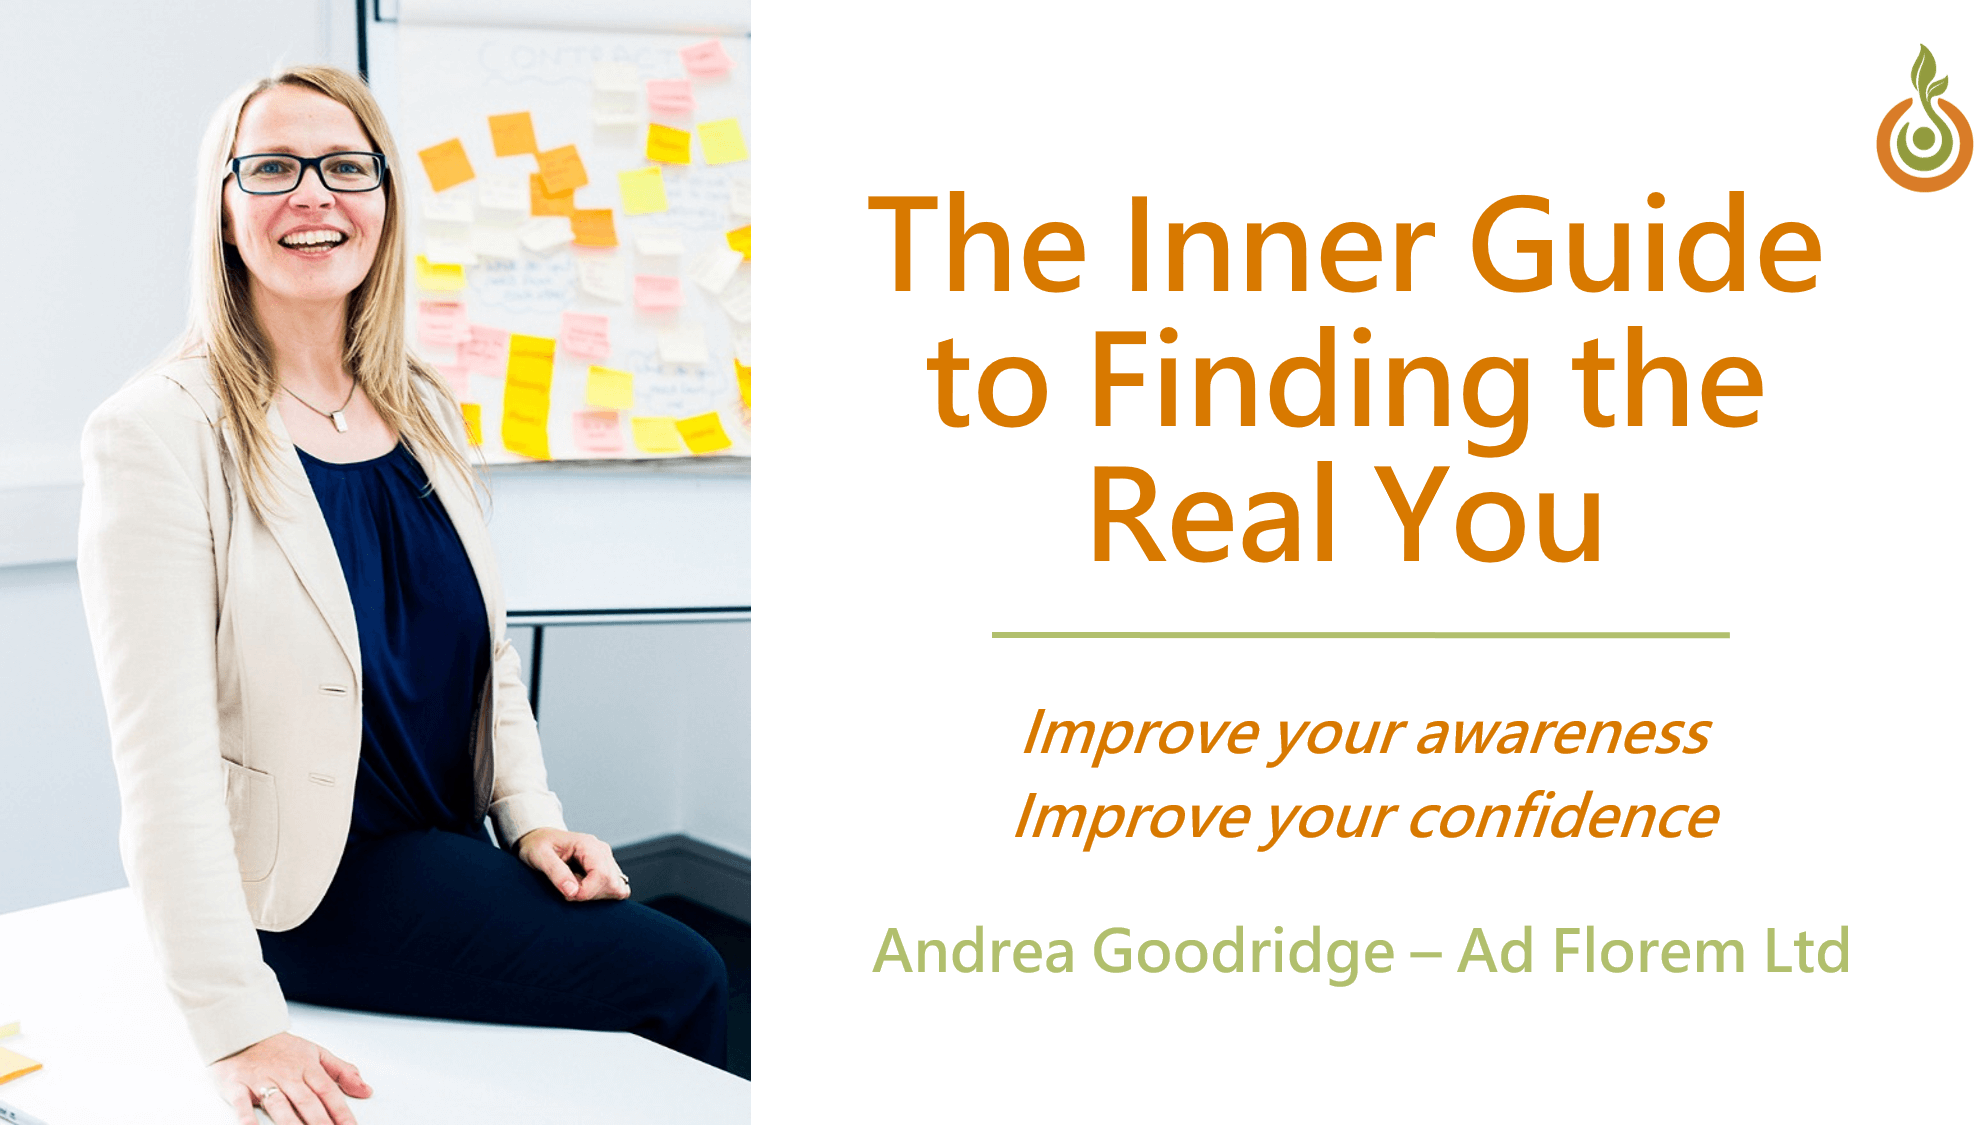 Andrea Goodridge introducing her Inner Guide to Finding the Real You